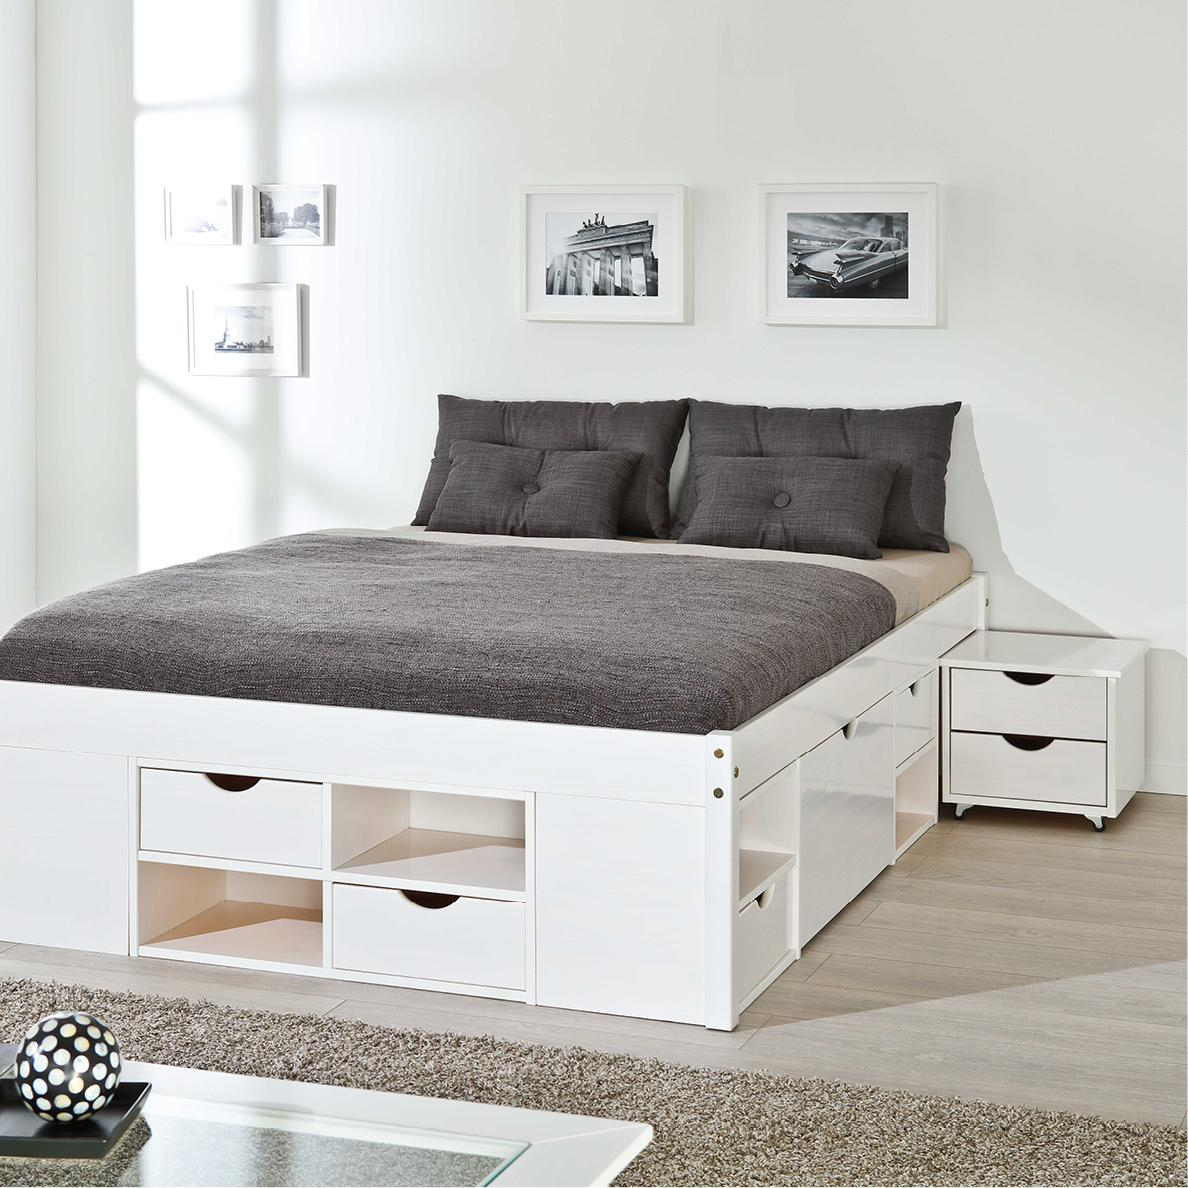 inter link bett funktionsbett doppelbett stauraumbett bett mit schubladen echt holz bio weiss. Black Bedroom Furniture Sets. Home Design Ideas